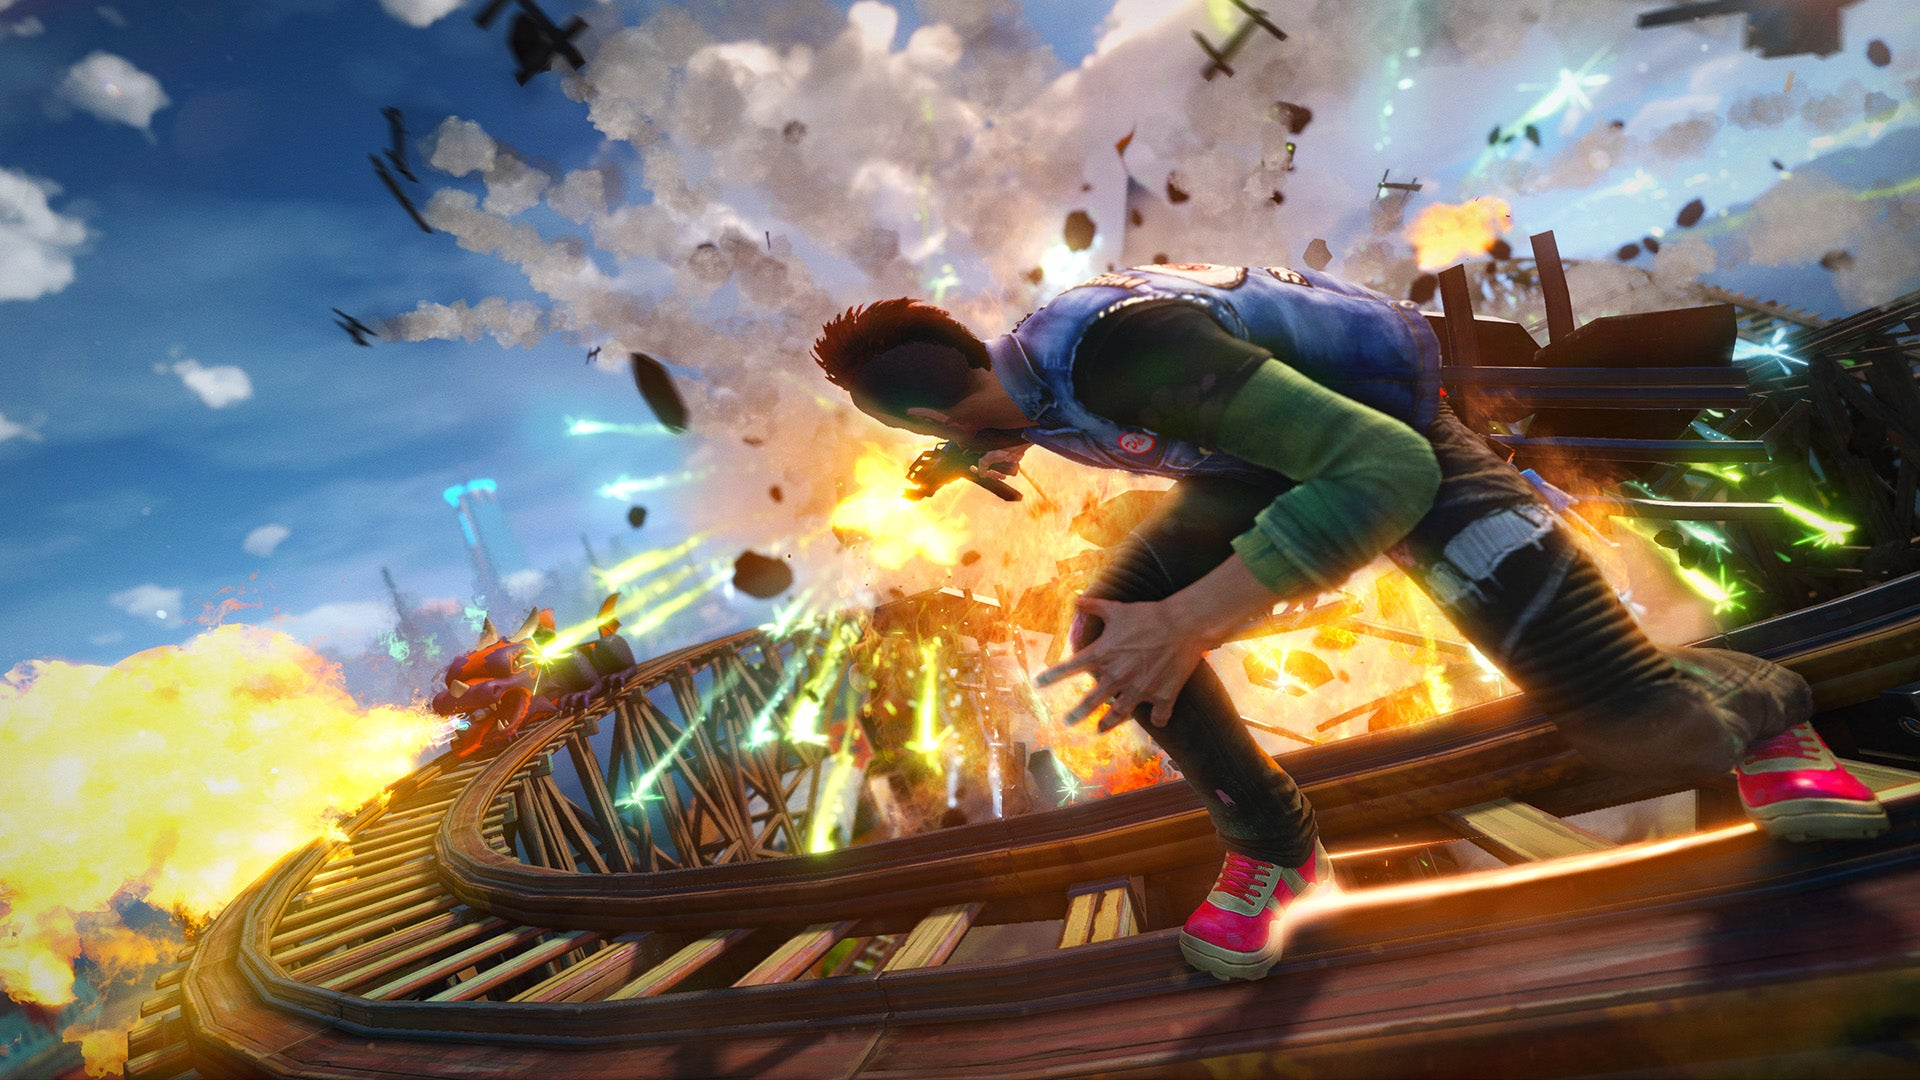 Stephen And Kirk Are Getting Back Into Sunset Overdrive